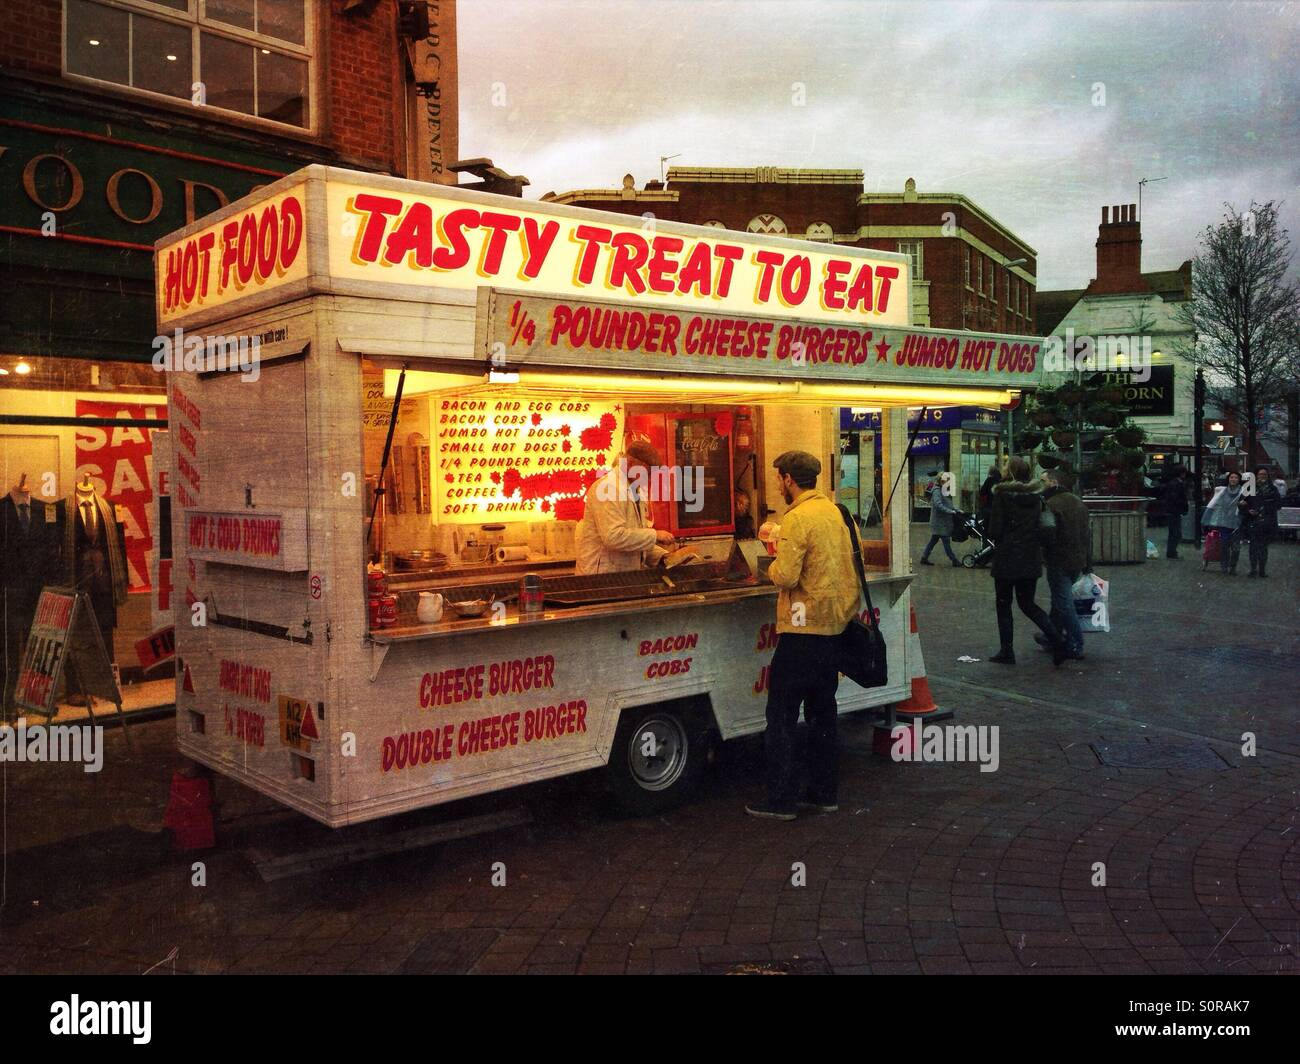 Fast Food Stall Stock Photos & Fast Food Stall Stock Images